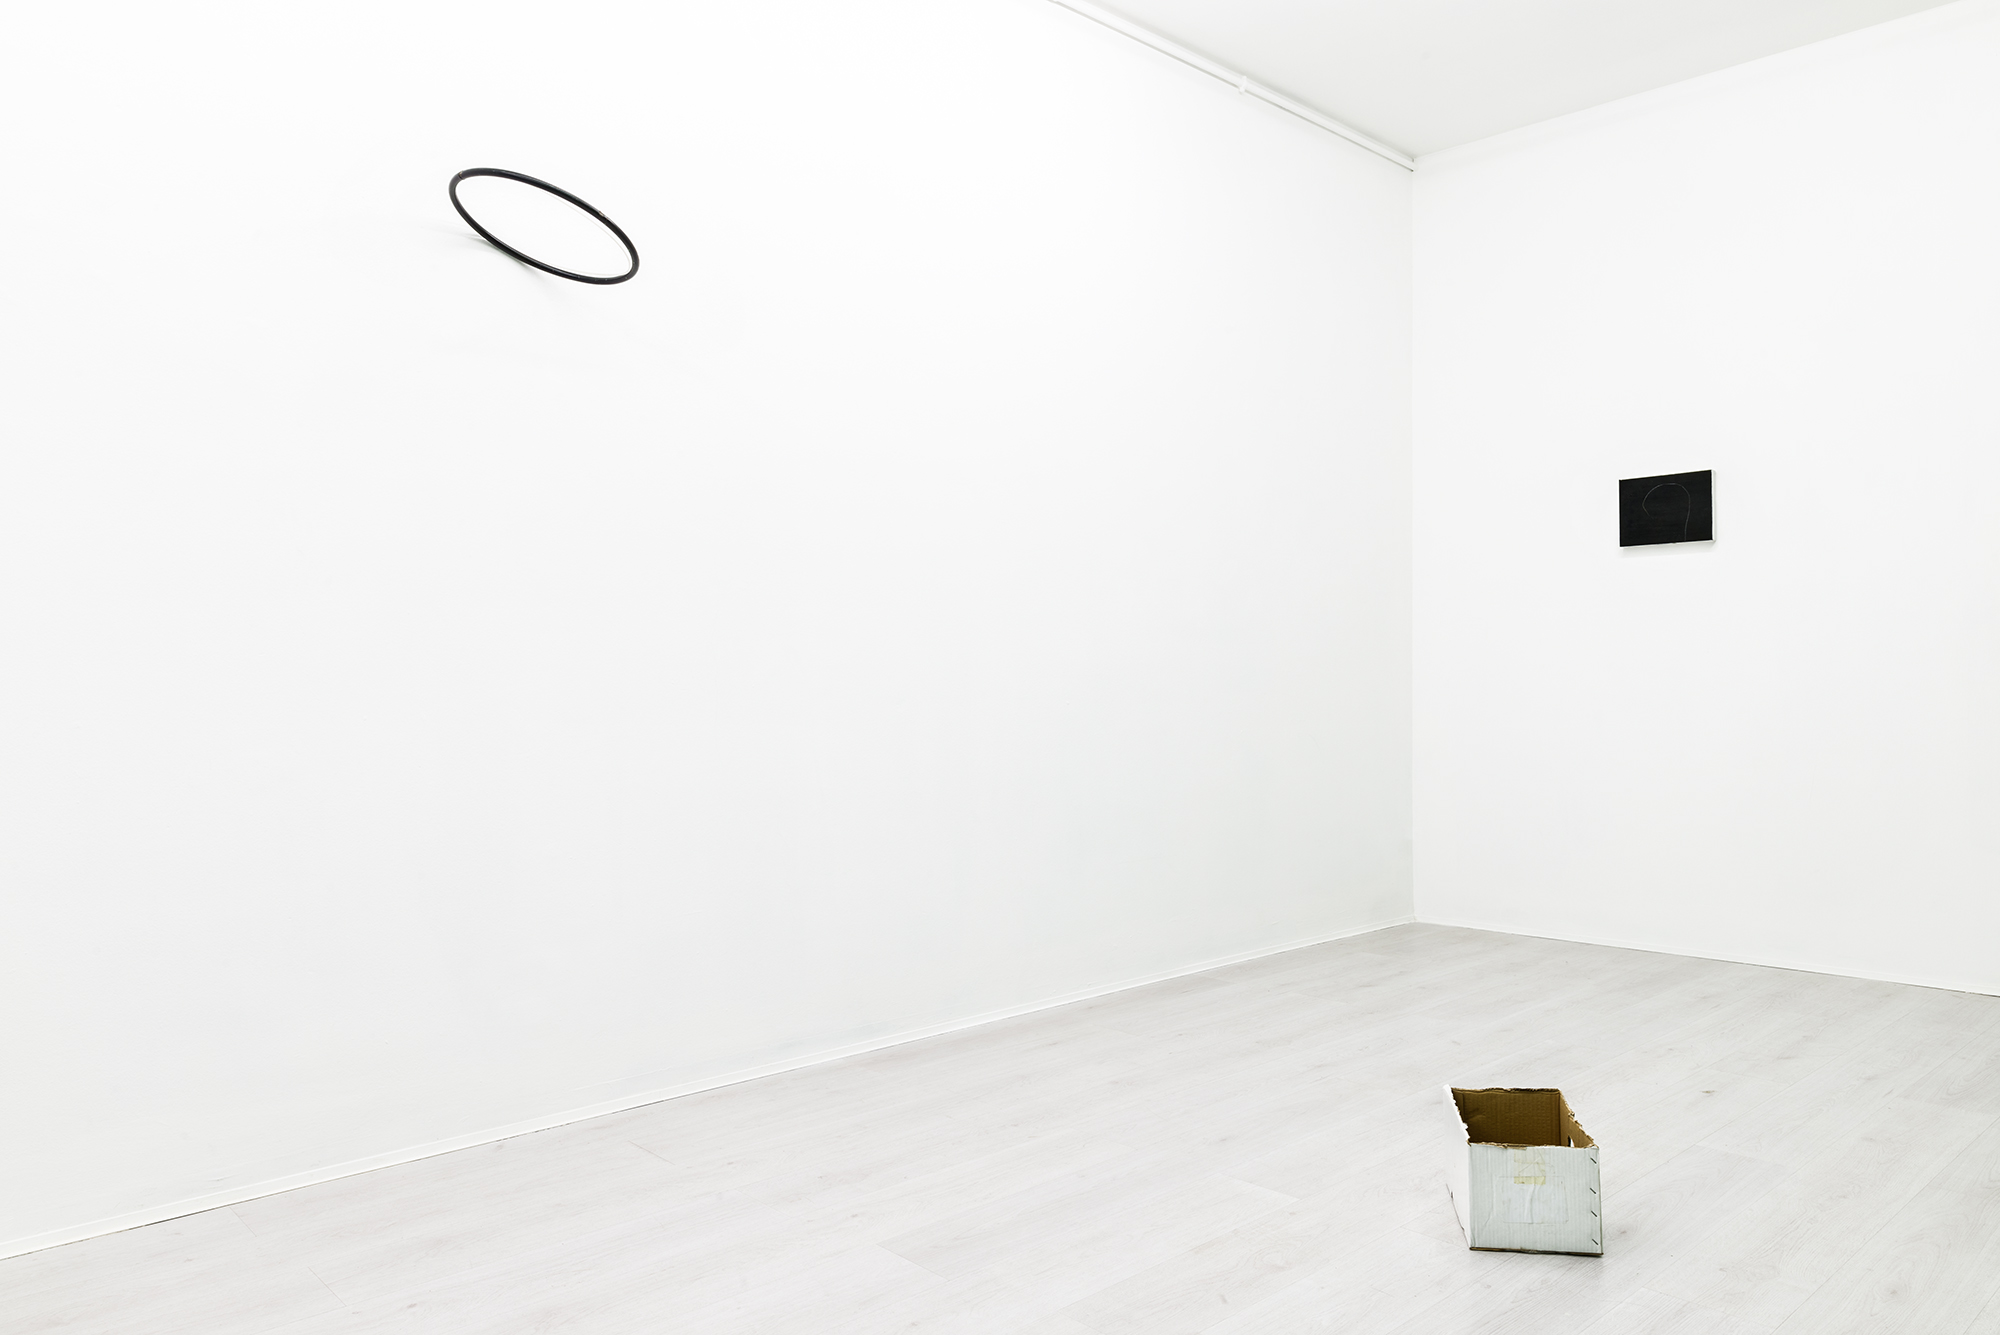 Luca Scarabelli, exhibition view at A+B gallery, 2017